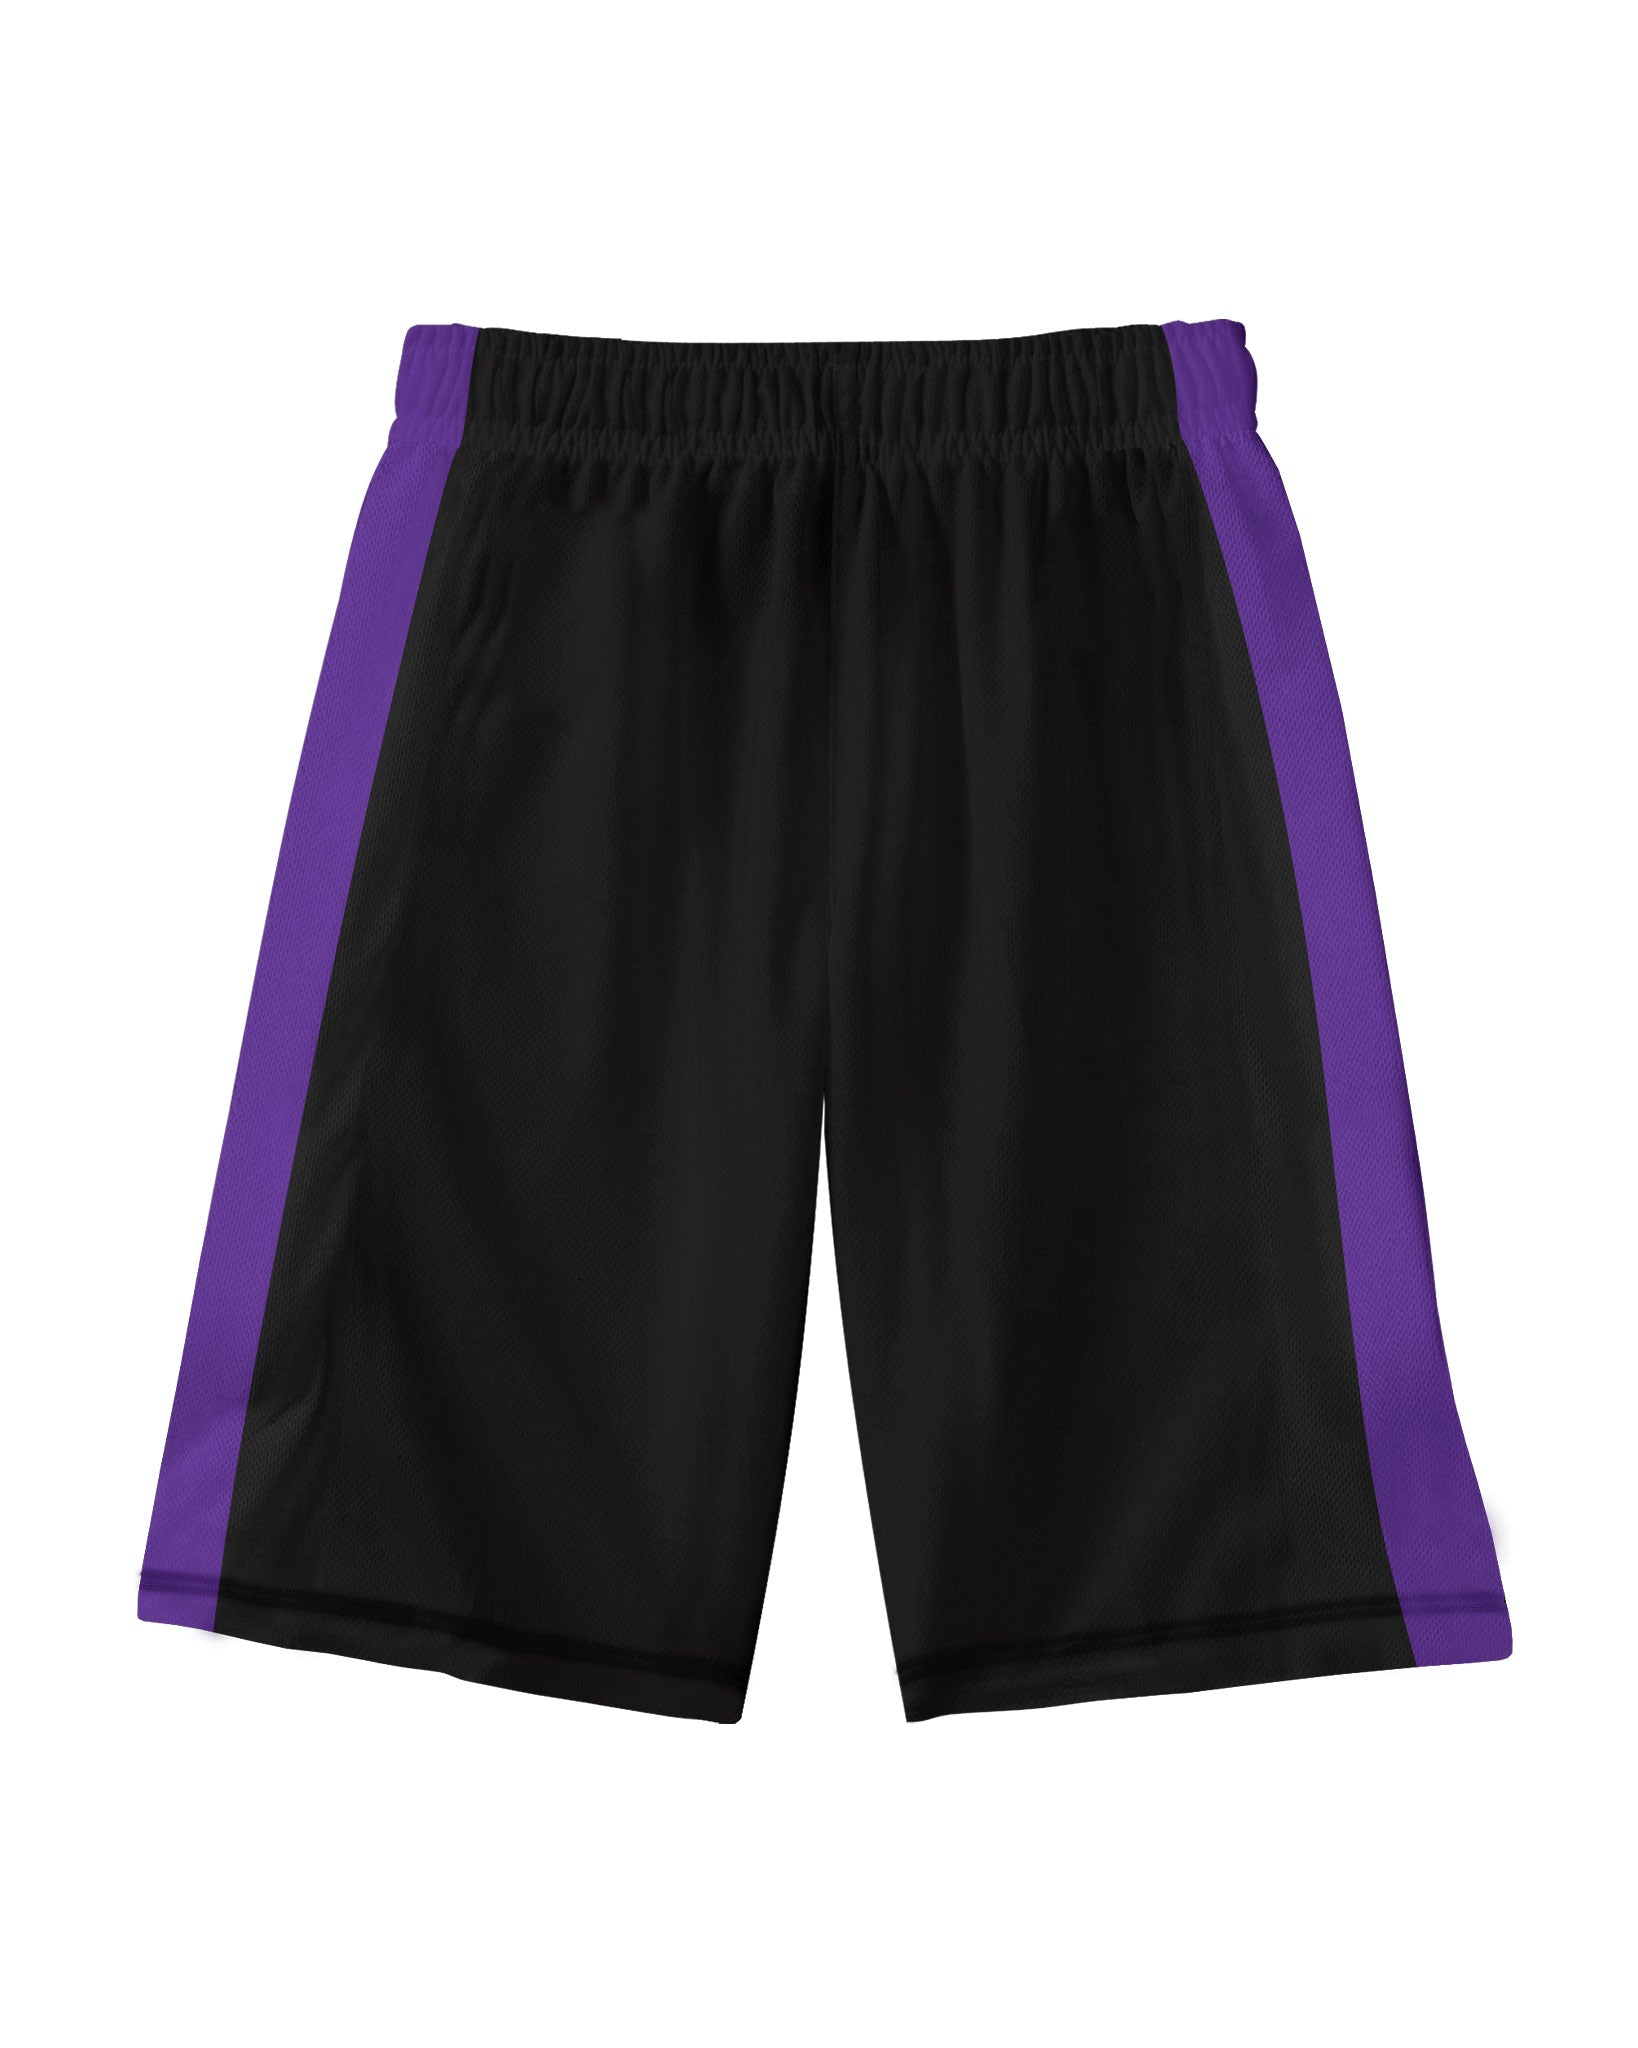 Harbour Shorts - Youth